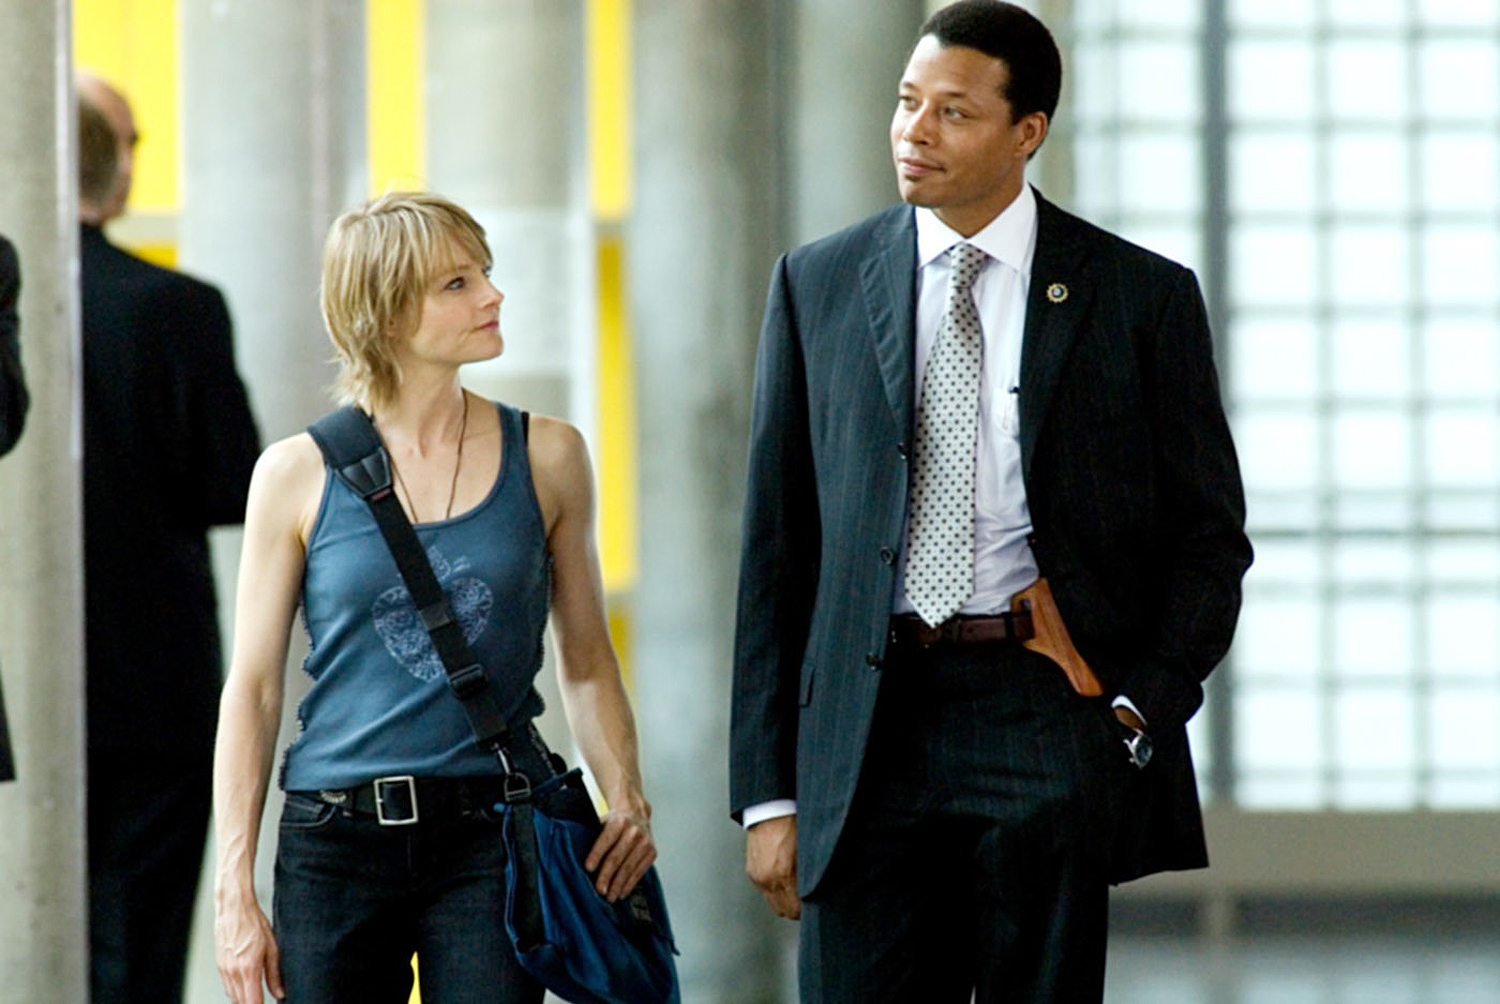 Jodie Foster and police detective Terrence Howard in The Brave One (2007)